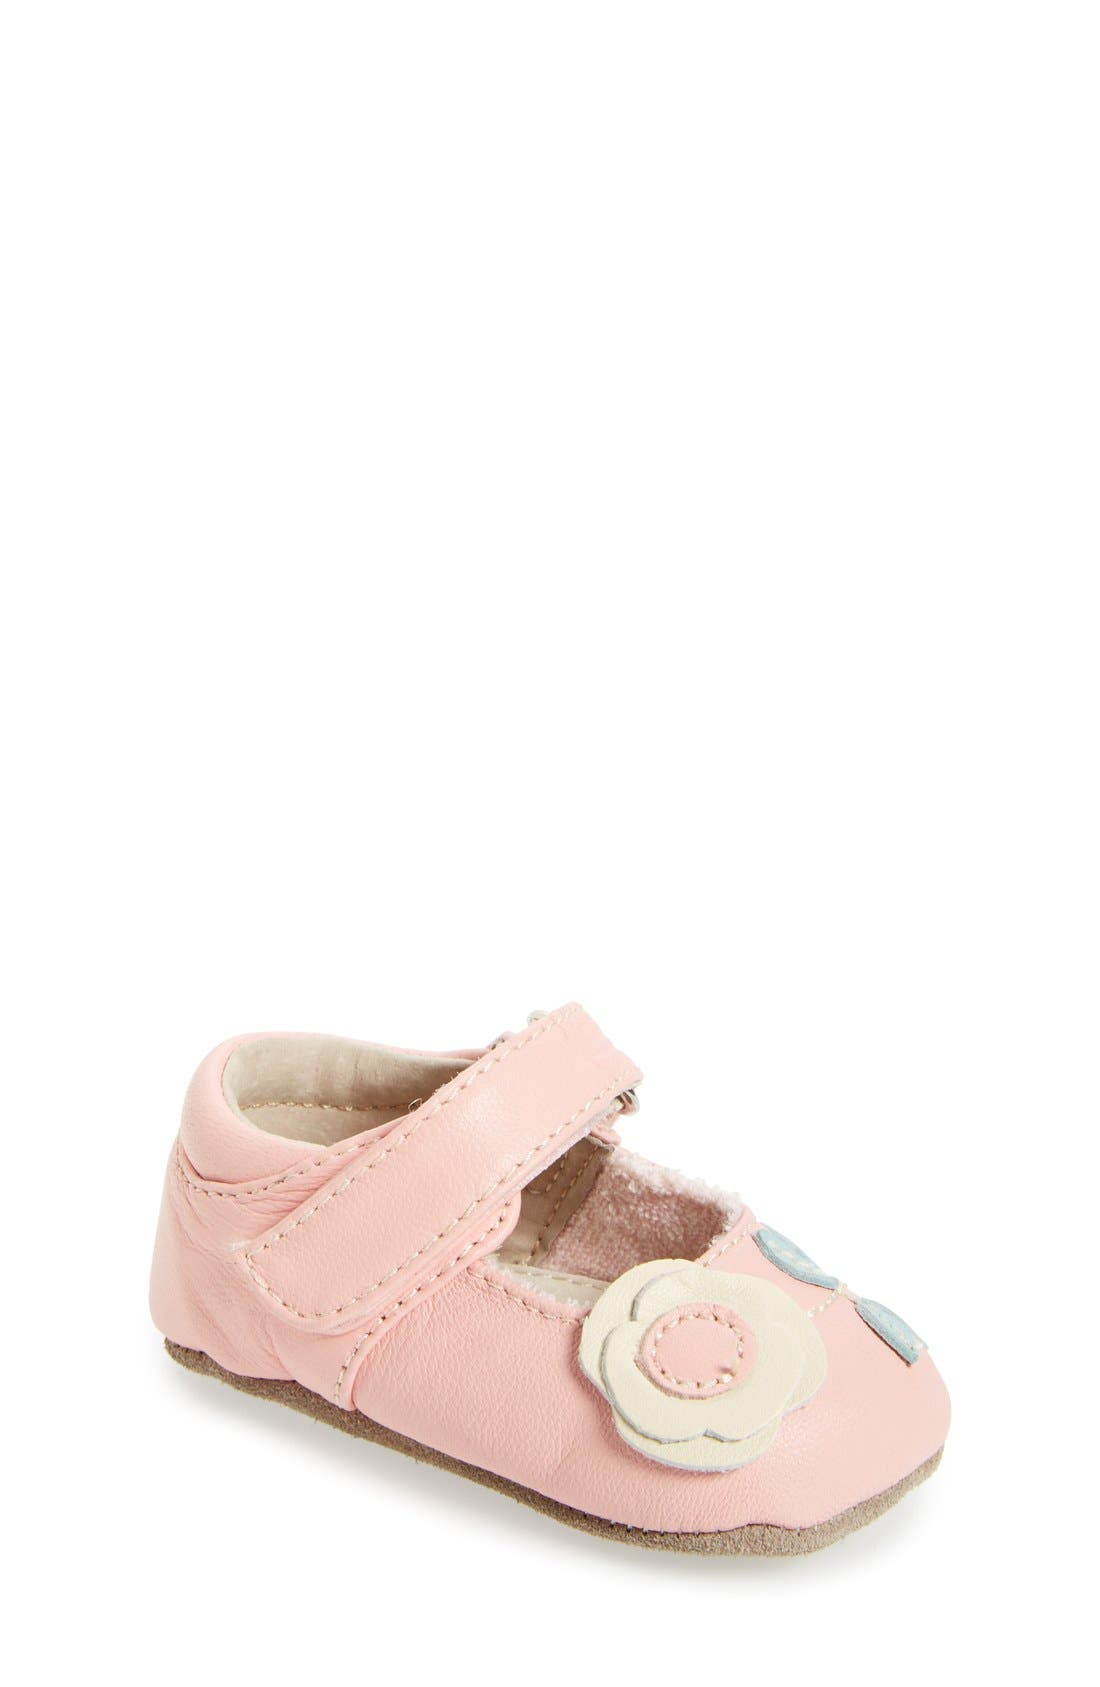 See Kai Run Carli Mary Jane Sandal (Baby)